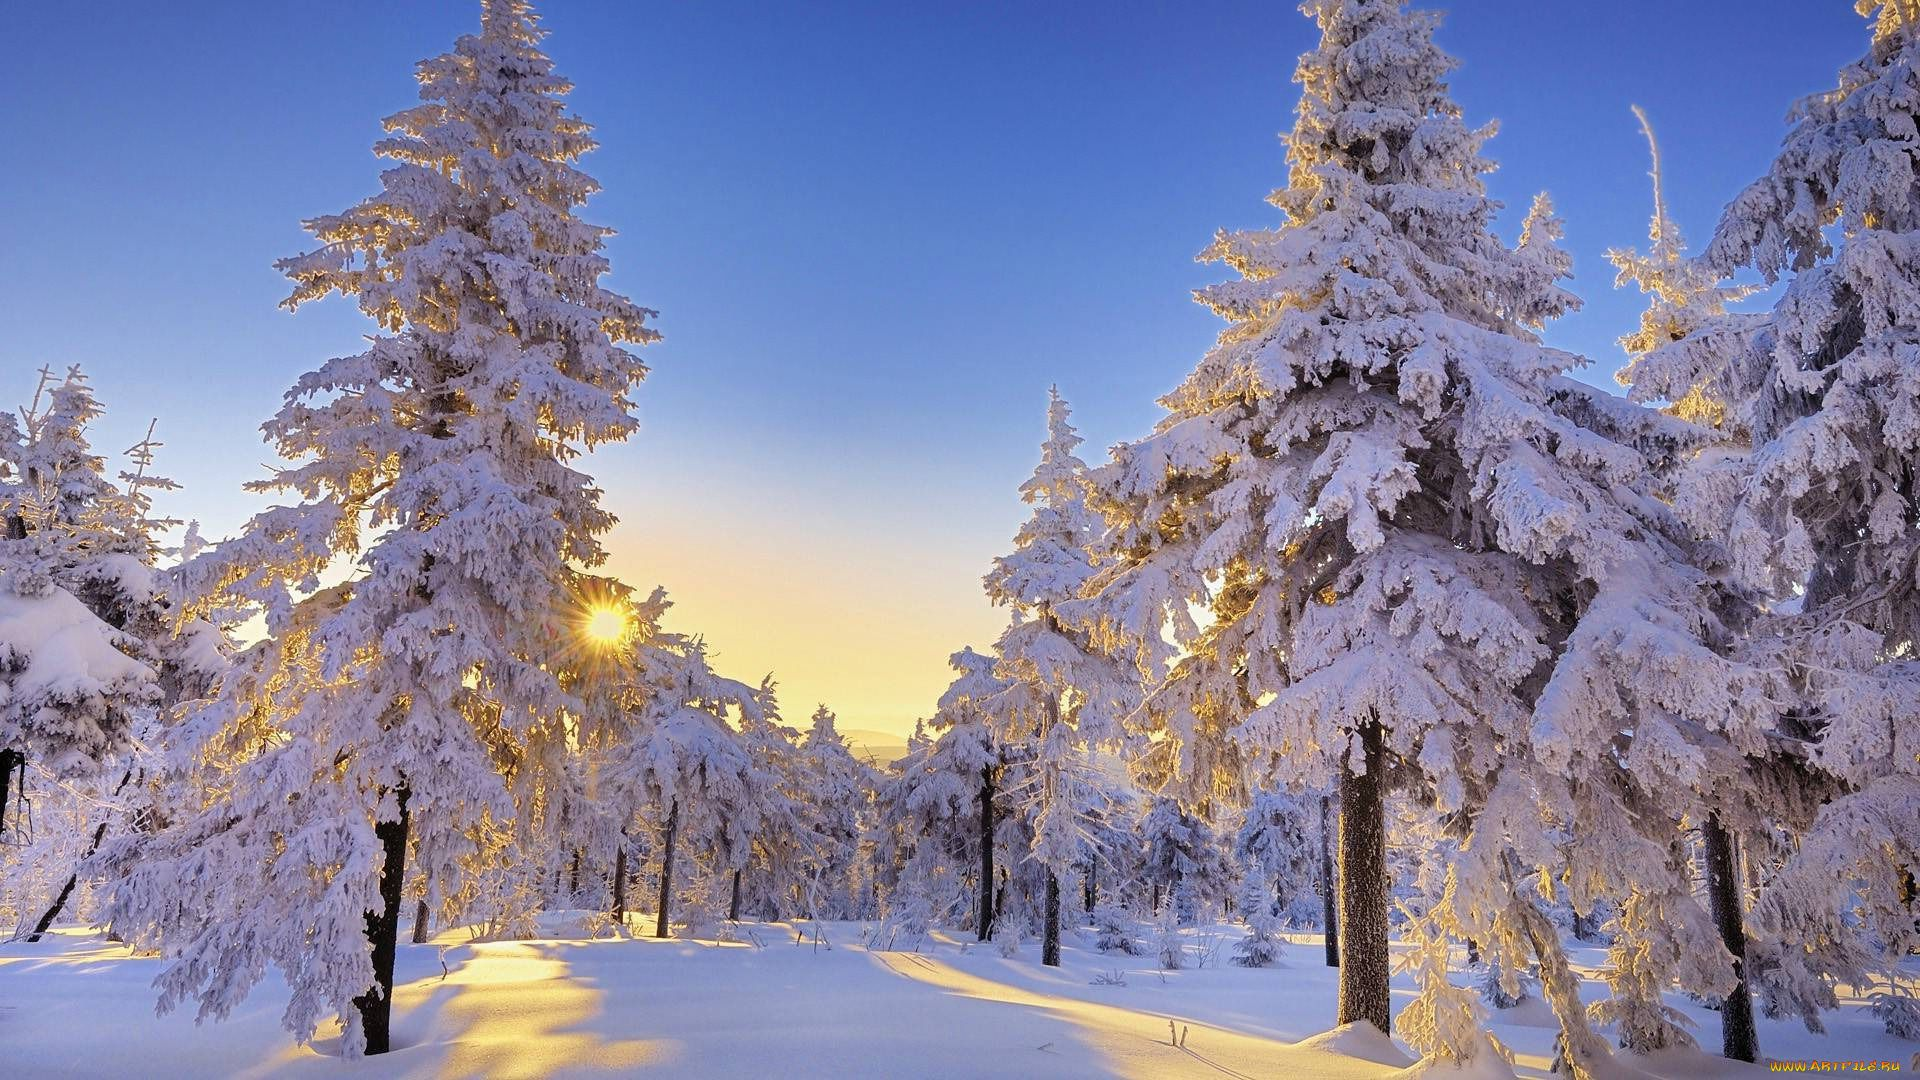 Winter Snow Scenes free download wallpaper